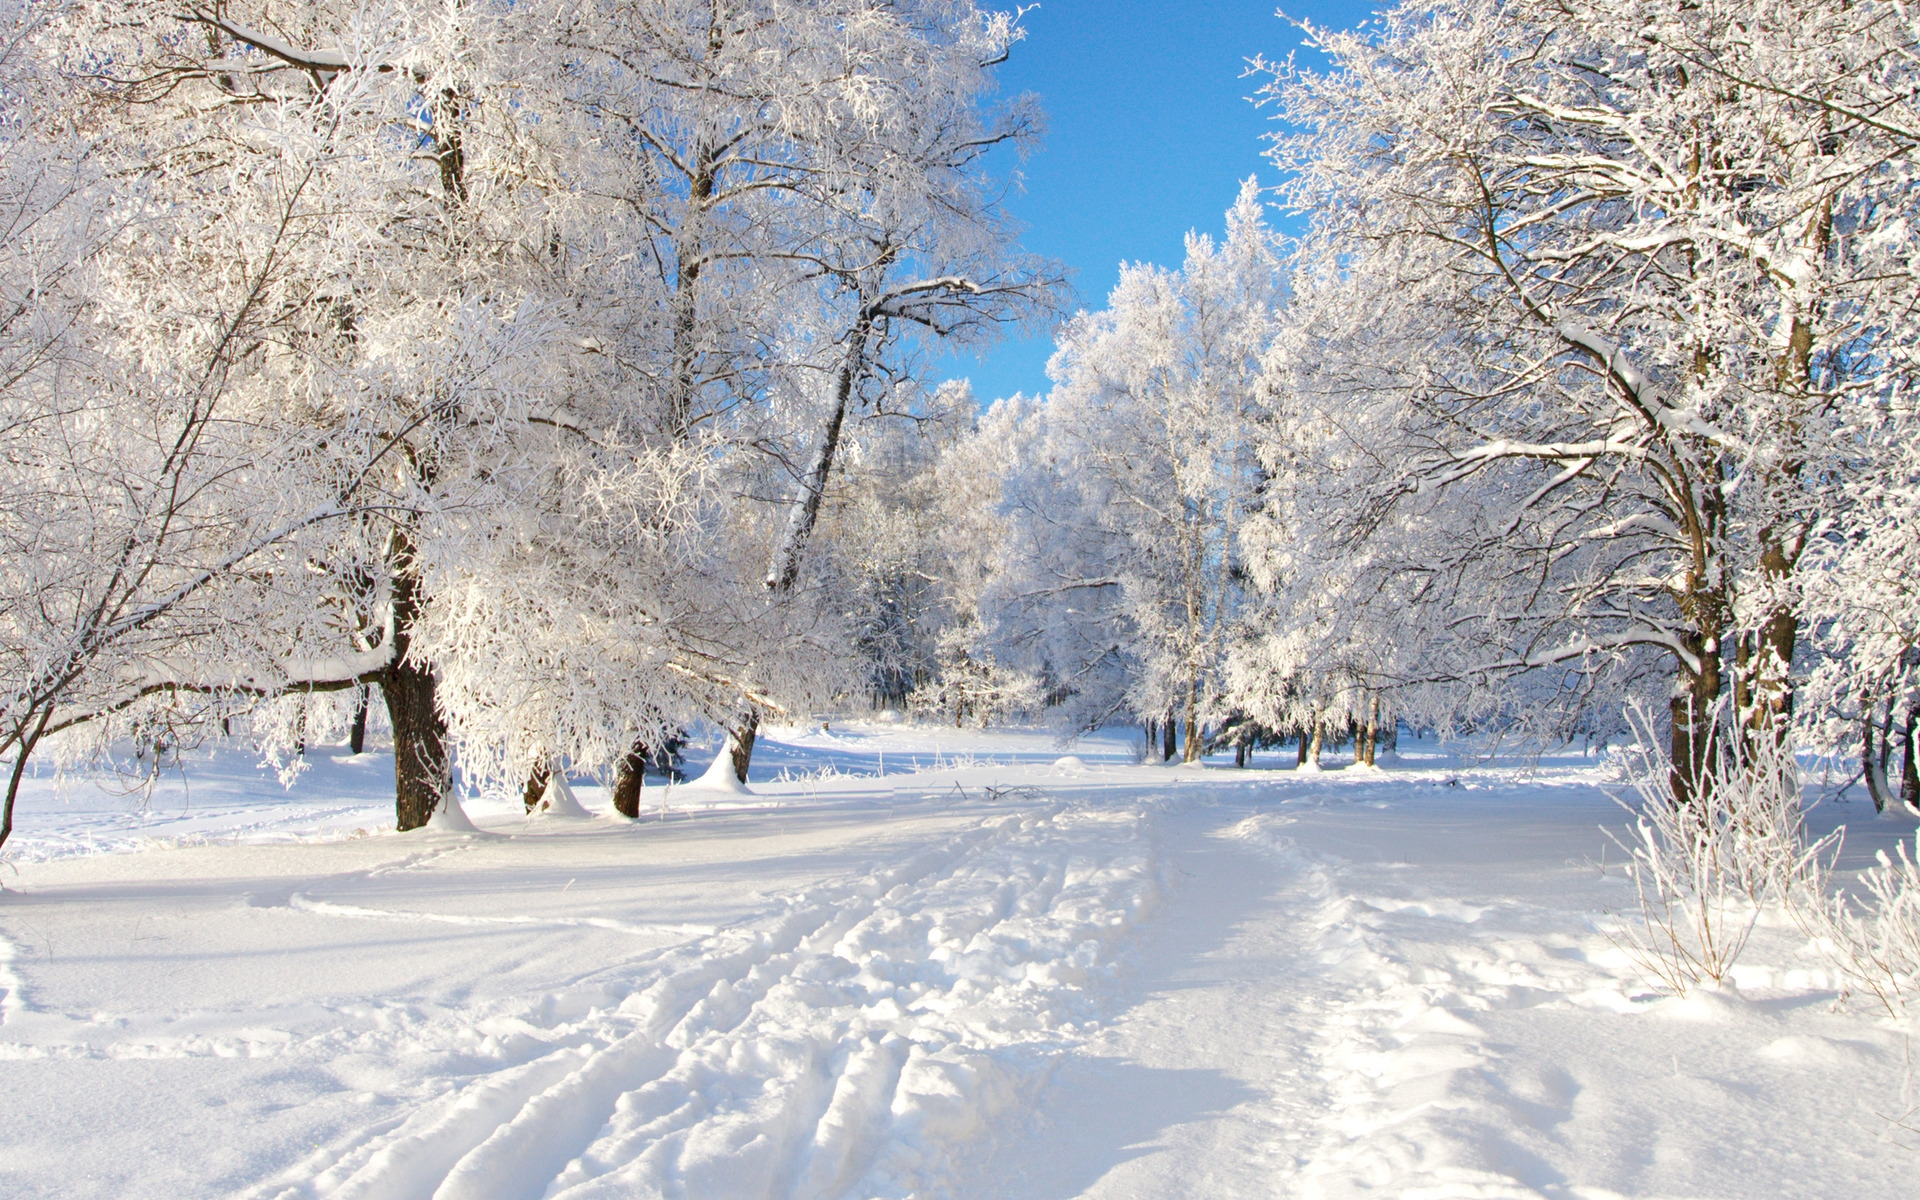 winter-scenery-18717-19196-hd-wallpapers